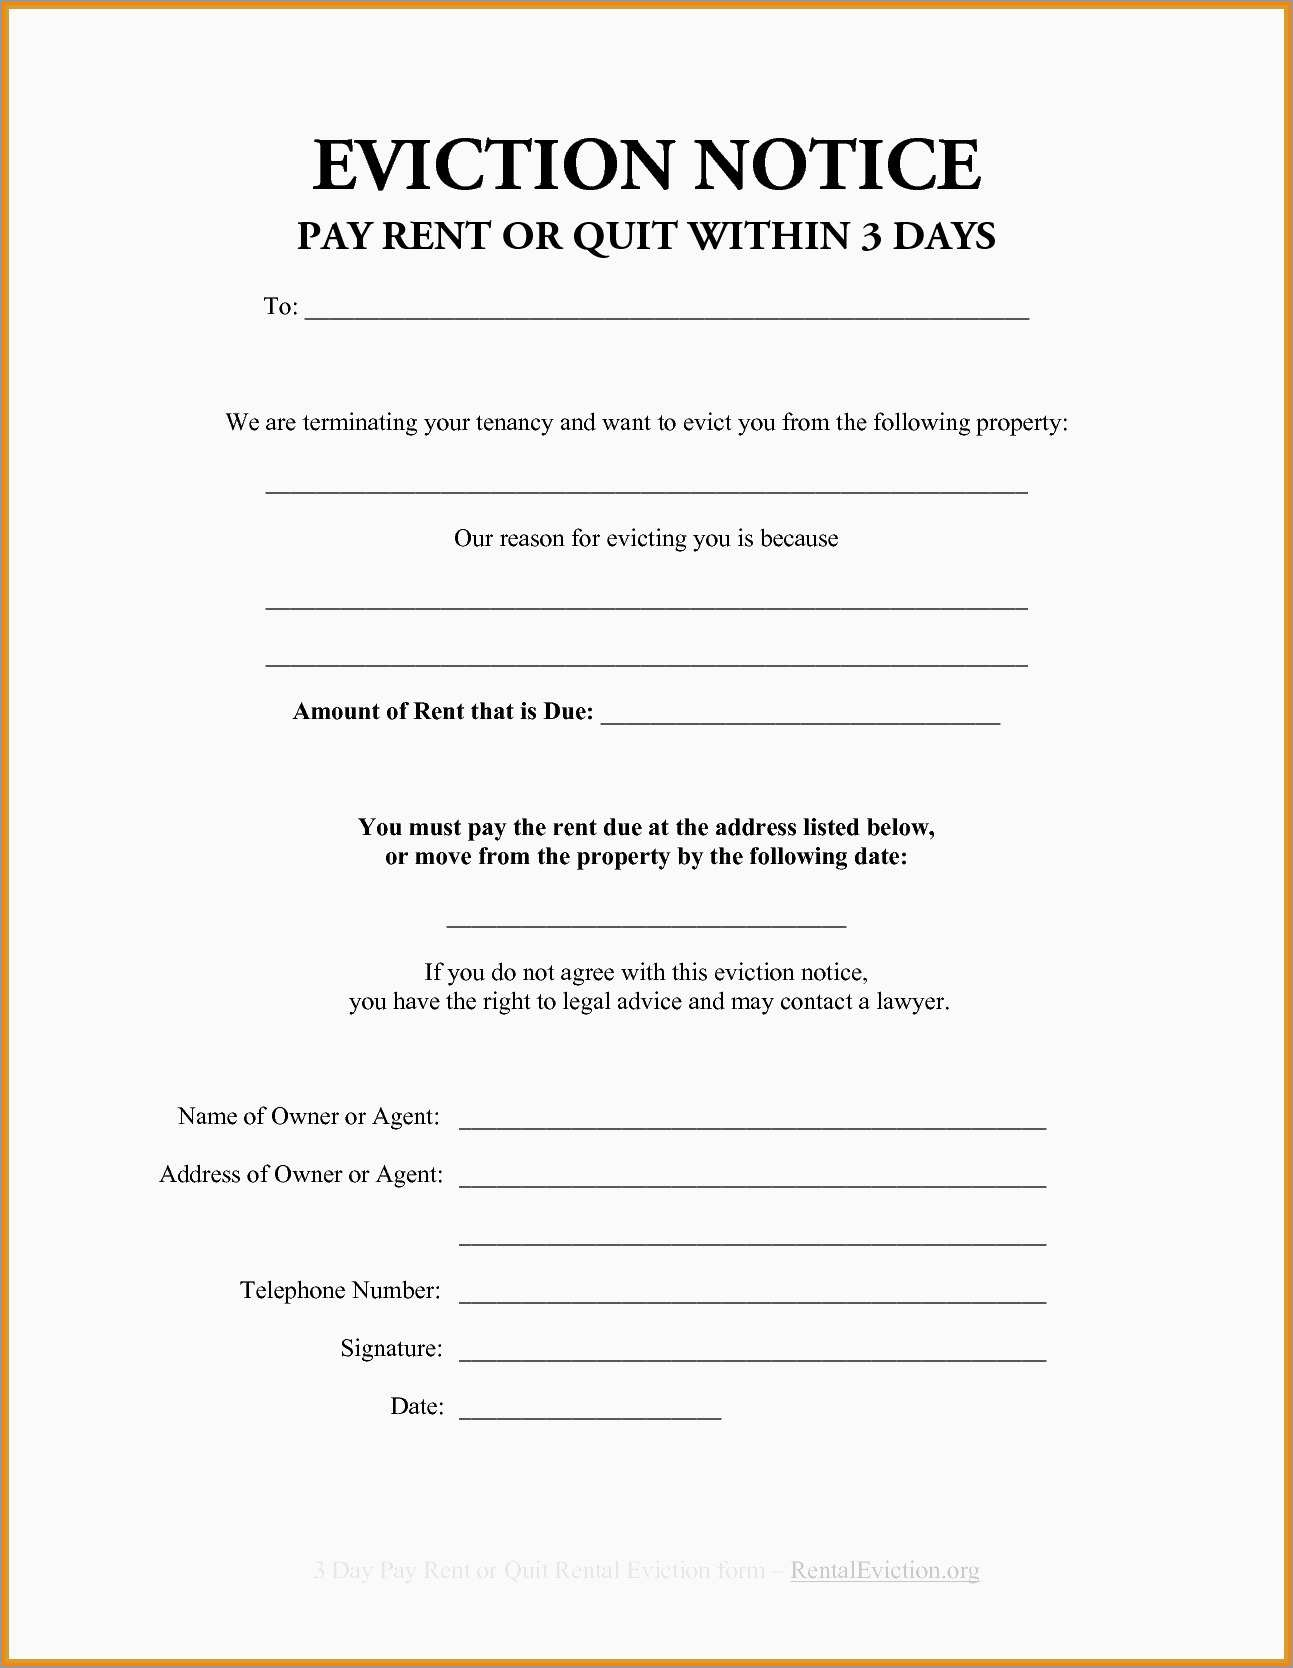 Fresh Free Printable 30 Day Eviction Notice Template | Best Of Template - Free Printable Blank Eviction Notice